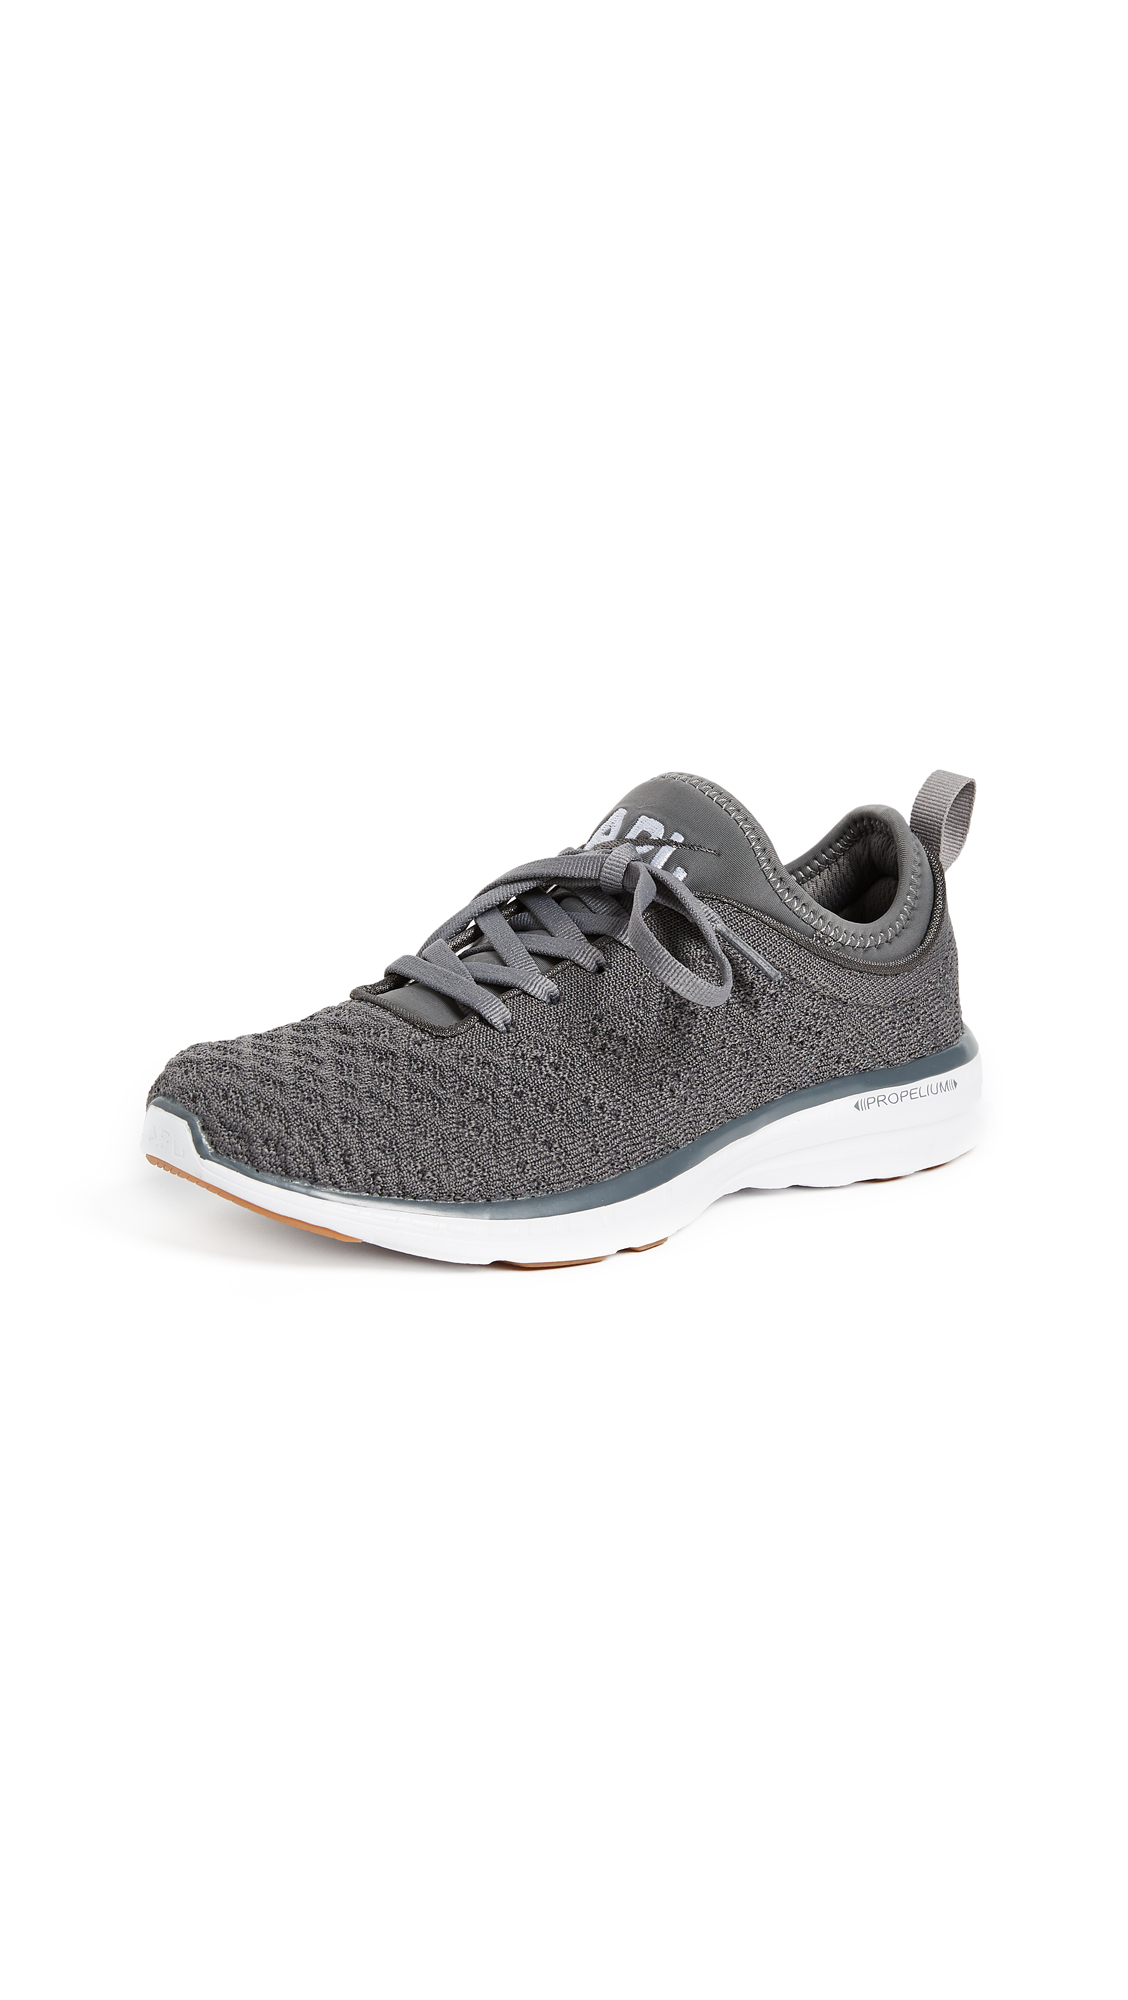 APL: Athletic Propulsion Labs TechLoom Phantom Sneakers - Gunmetal/White/Gum